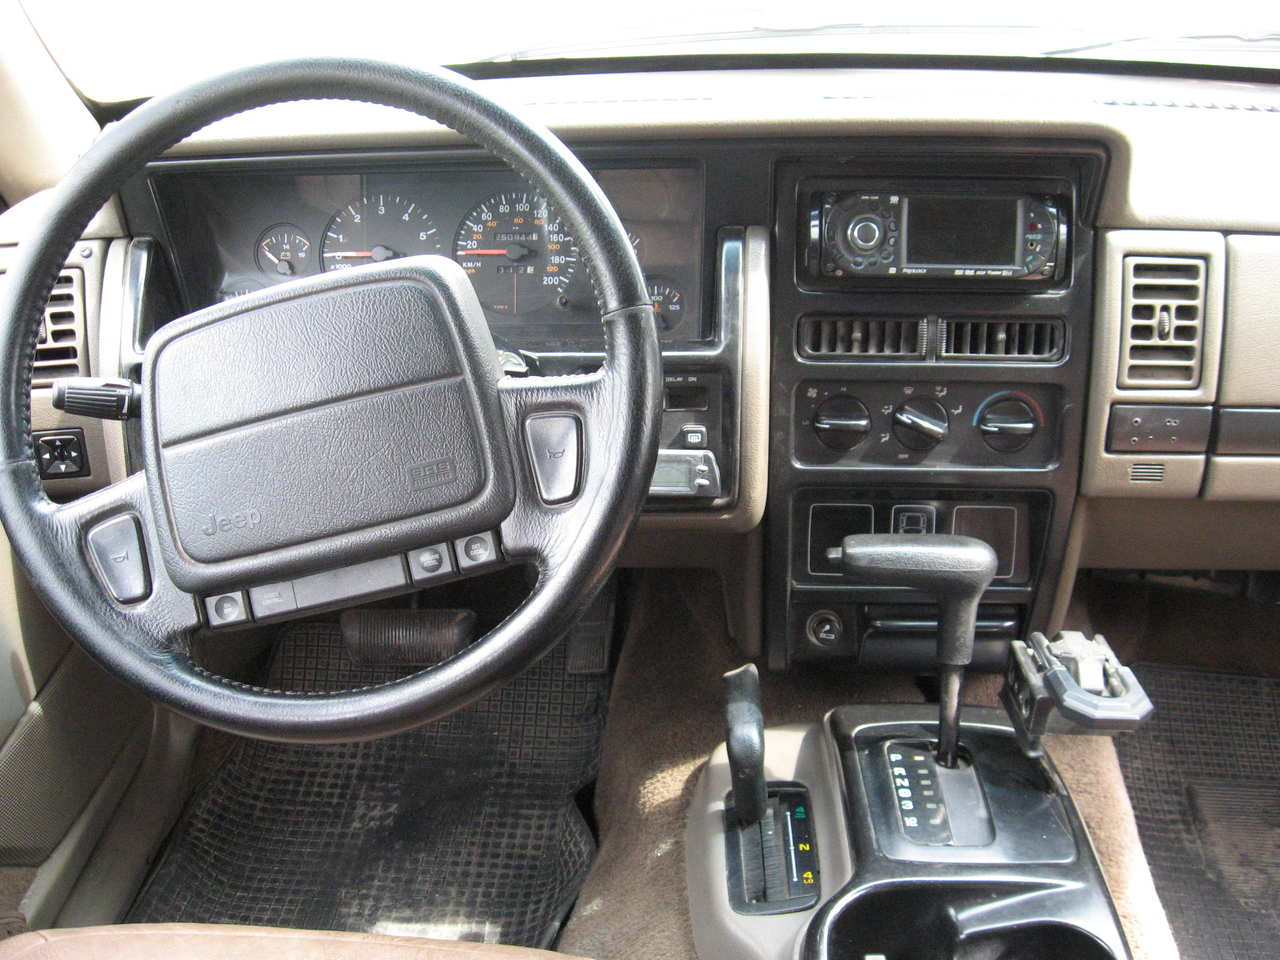 Jeep grand cherokee 40i laredo 1993 car interior design 1993 jeep grand cherokee interior